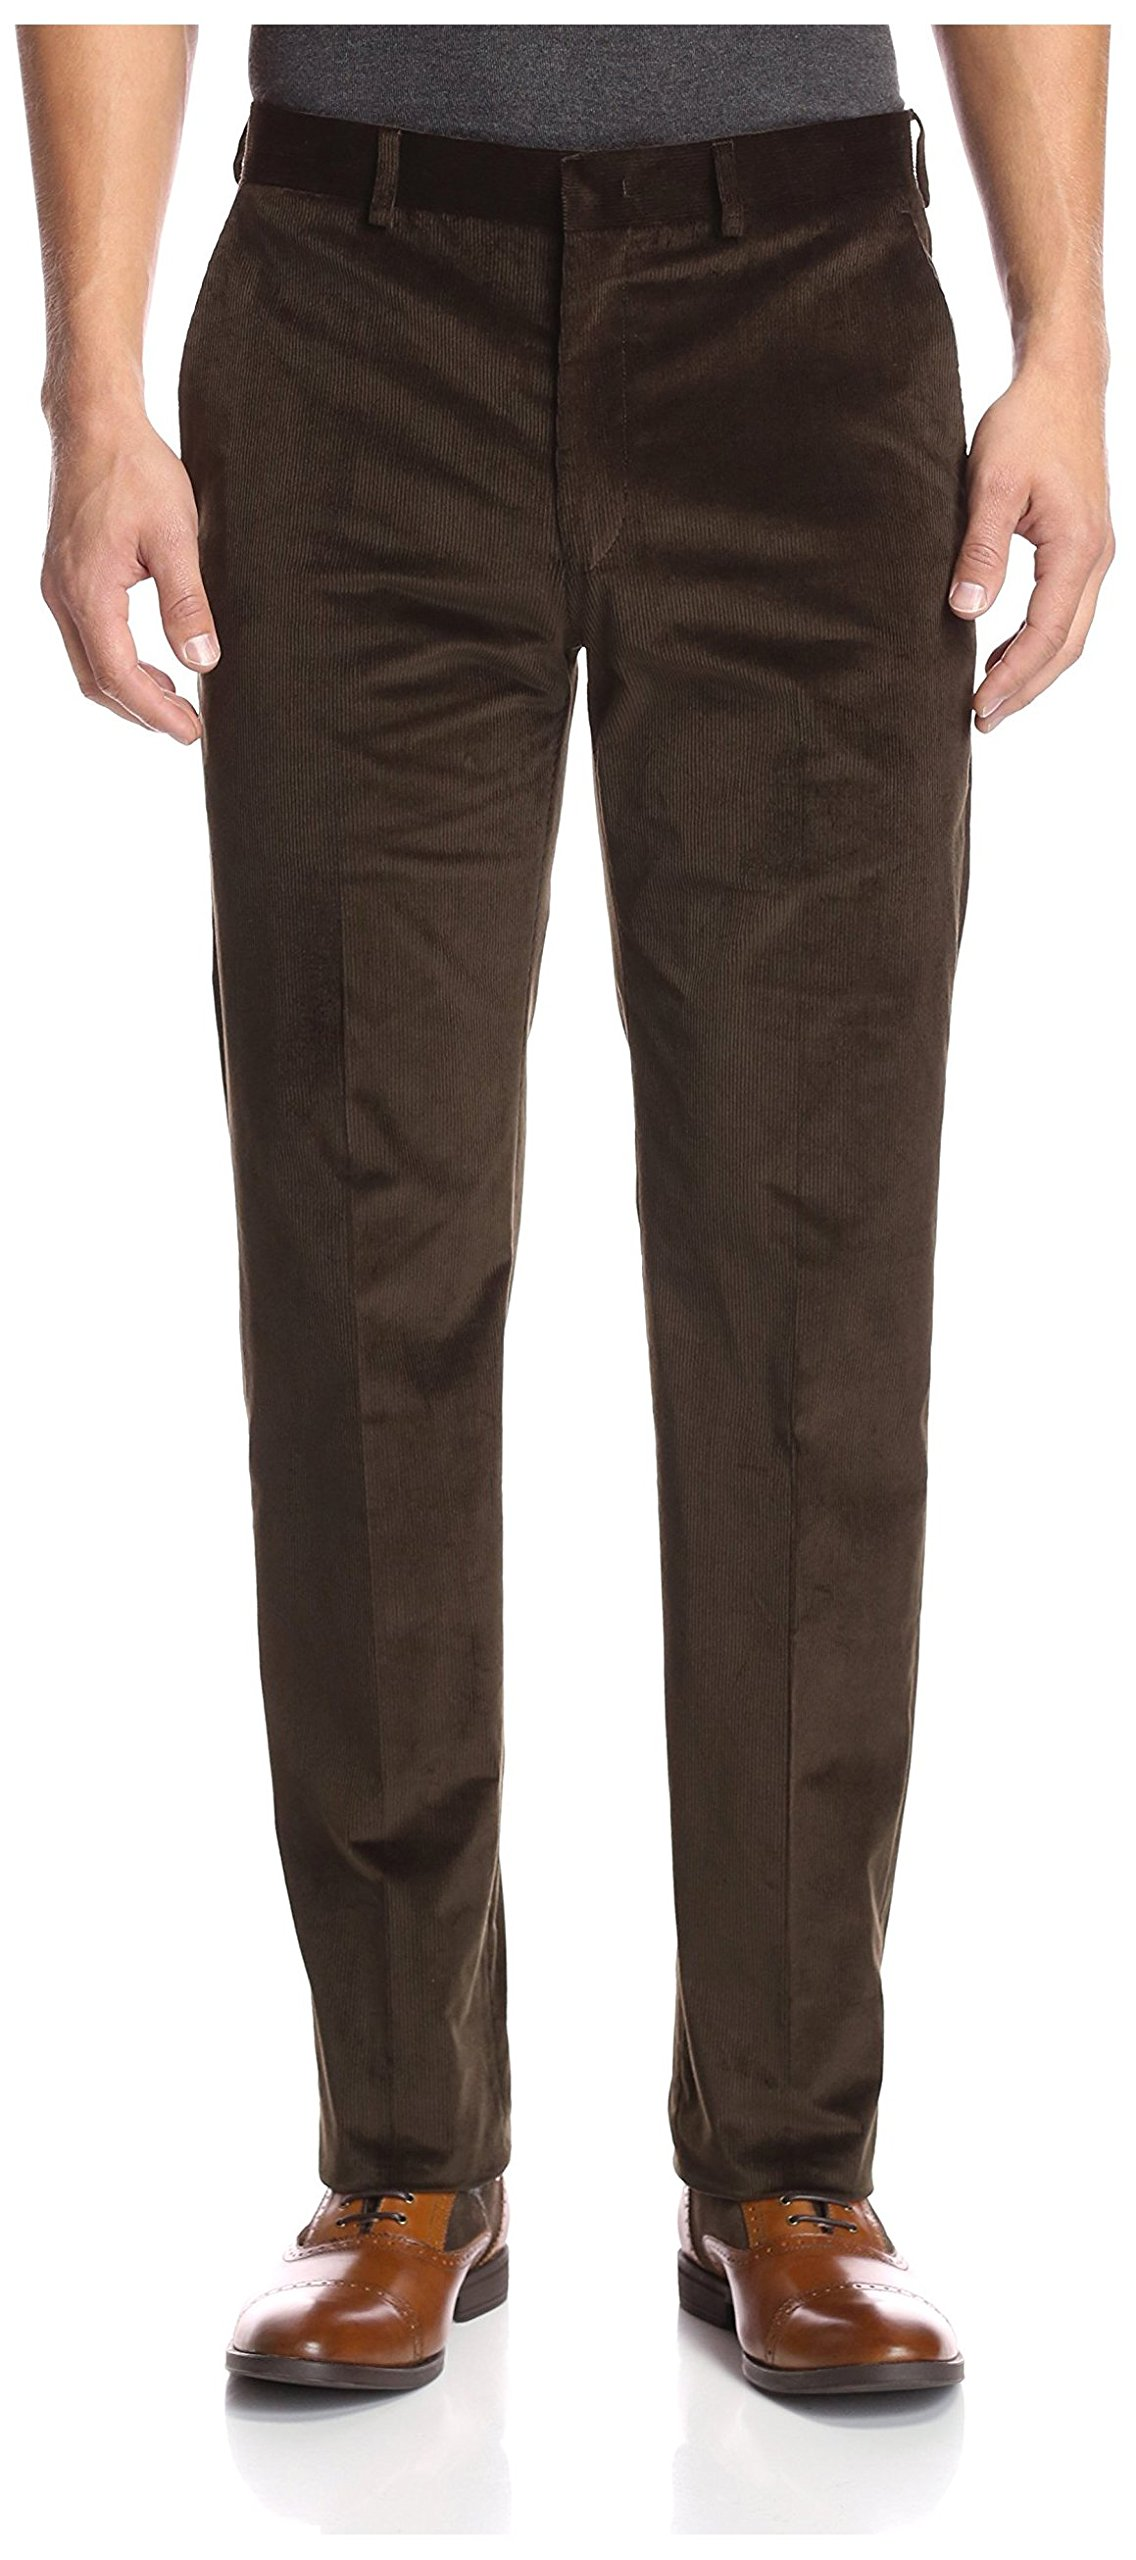 Franklin Tailored Men's Flat Front Corduroy Tyler Trouser, Olive, 34 US